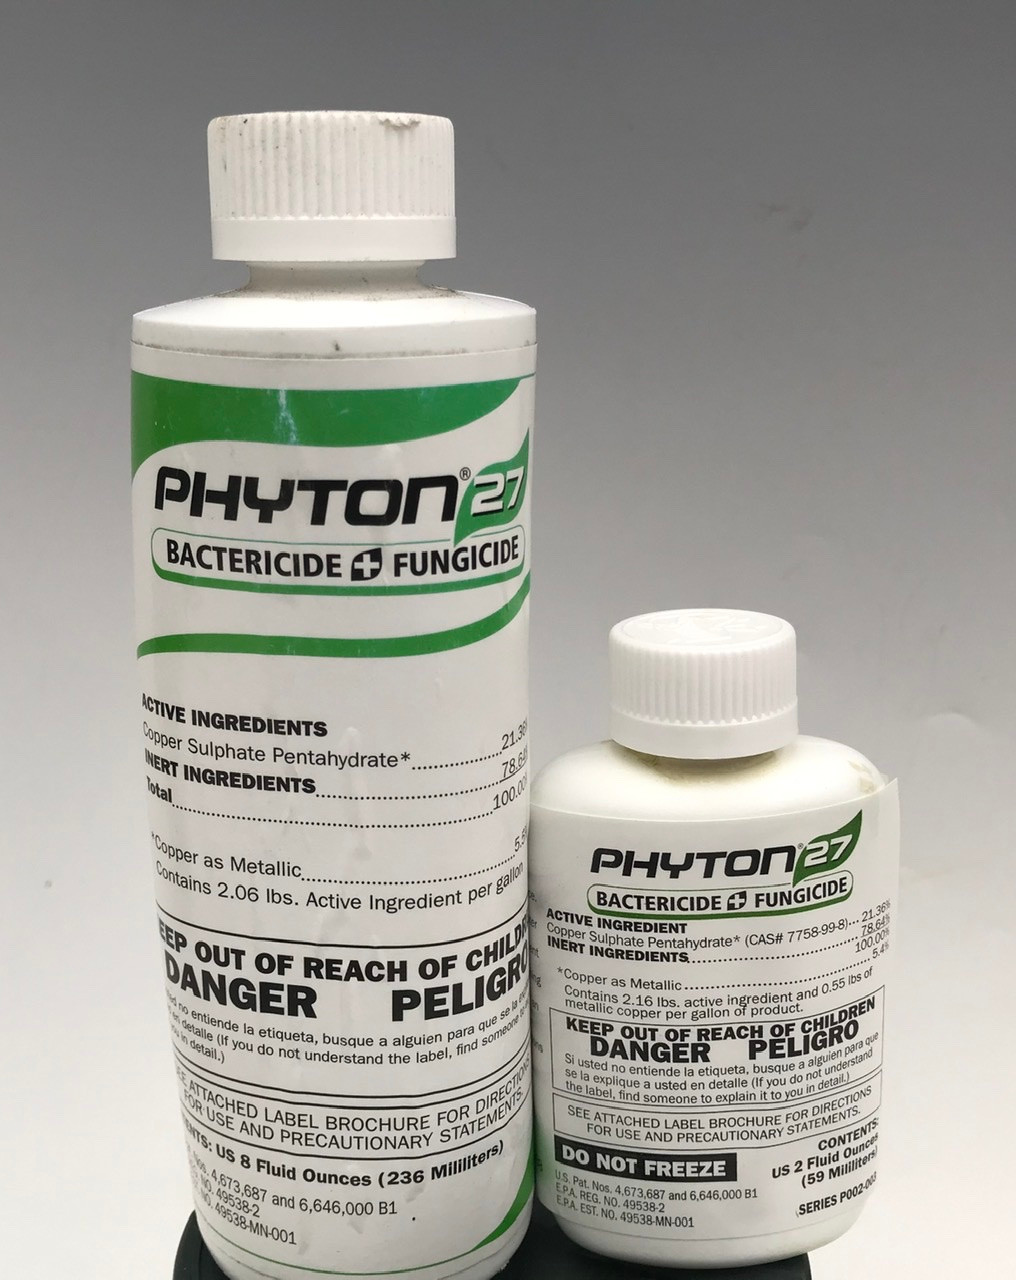 Bactericide & Fungicide Phyton 27